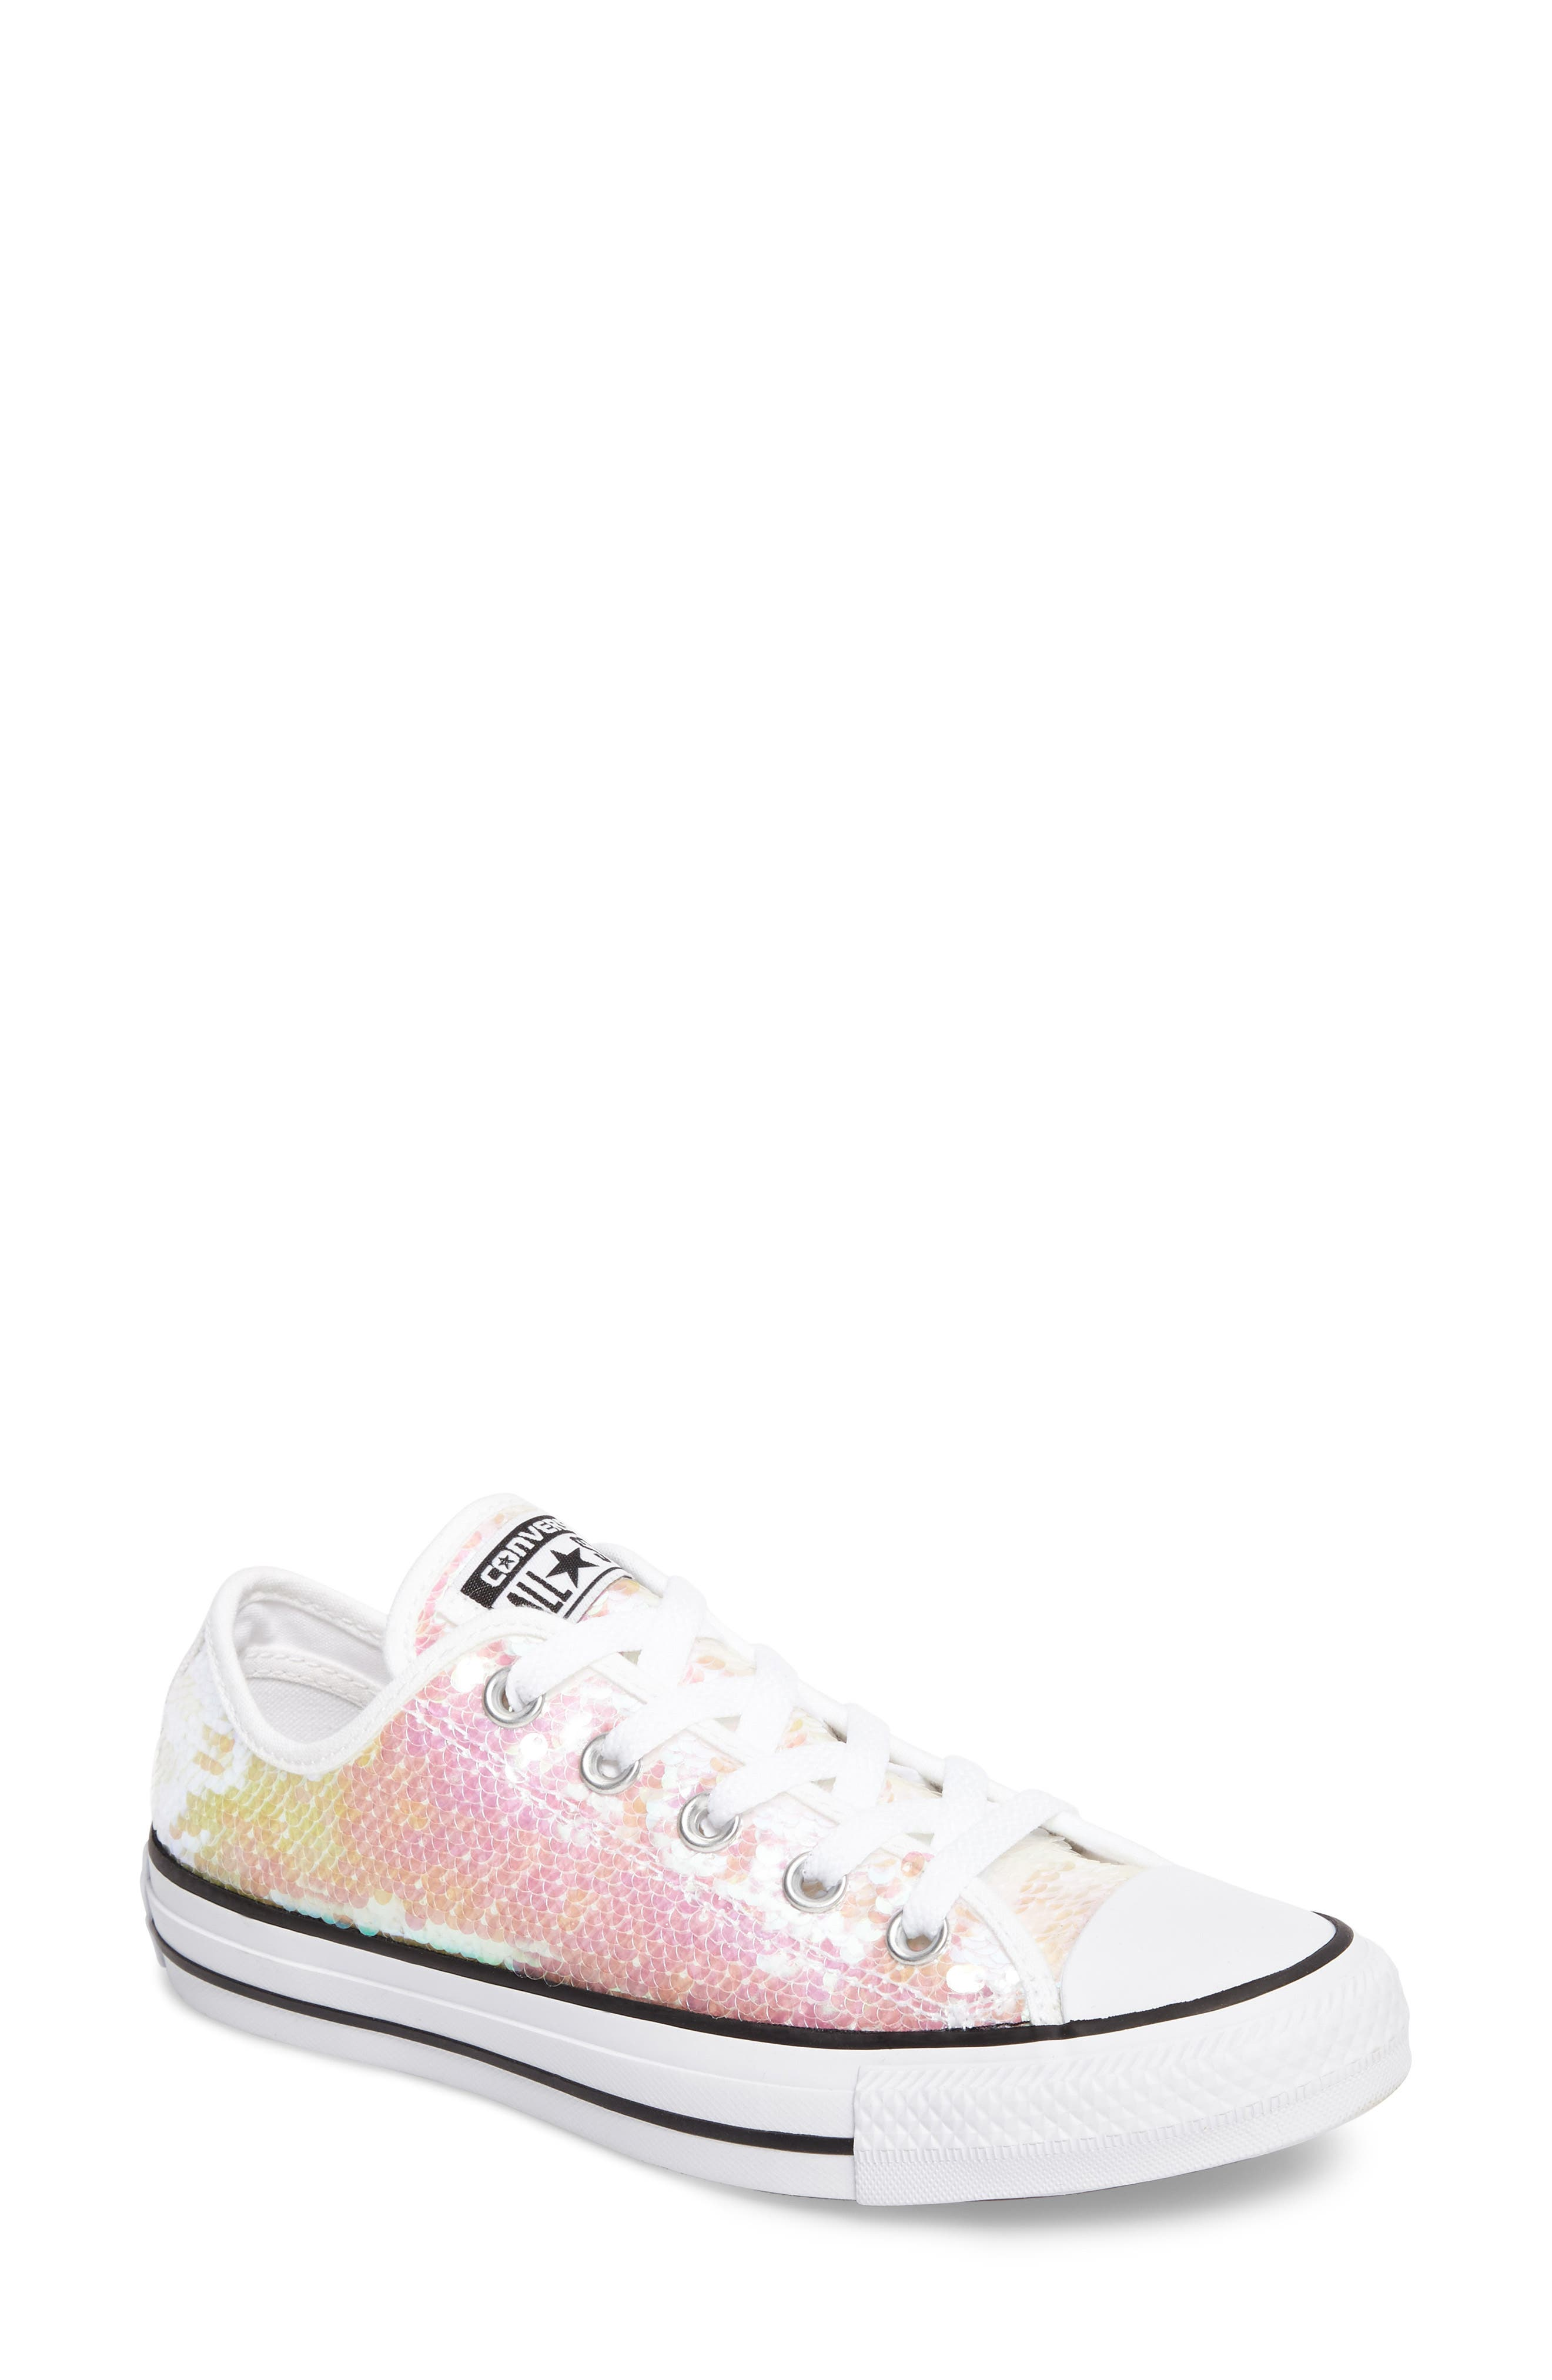 Alternate Image 1 Selected - Converse Chuck Taylor® All Star® Sequin Low Top Sneaker (Women)